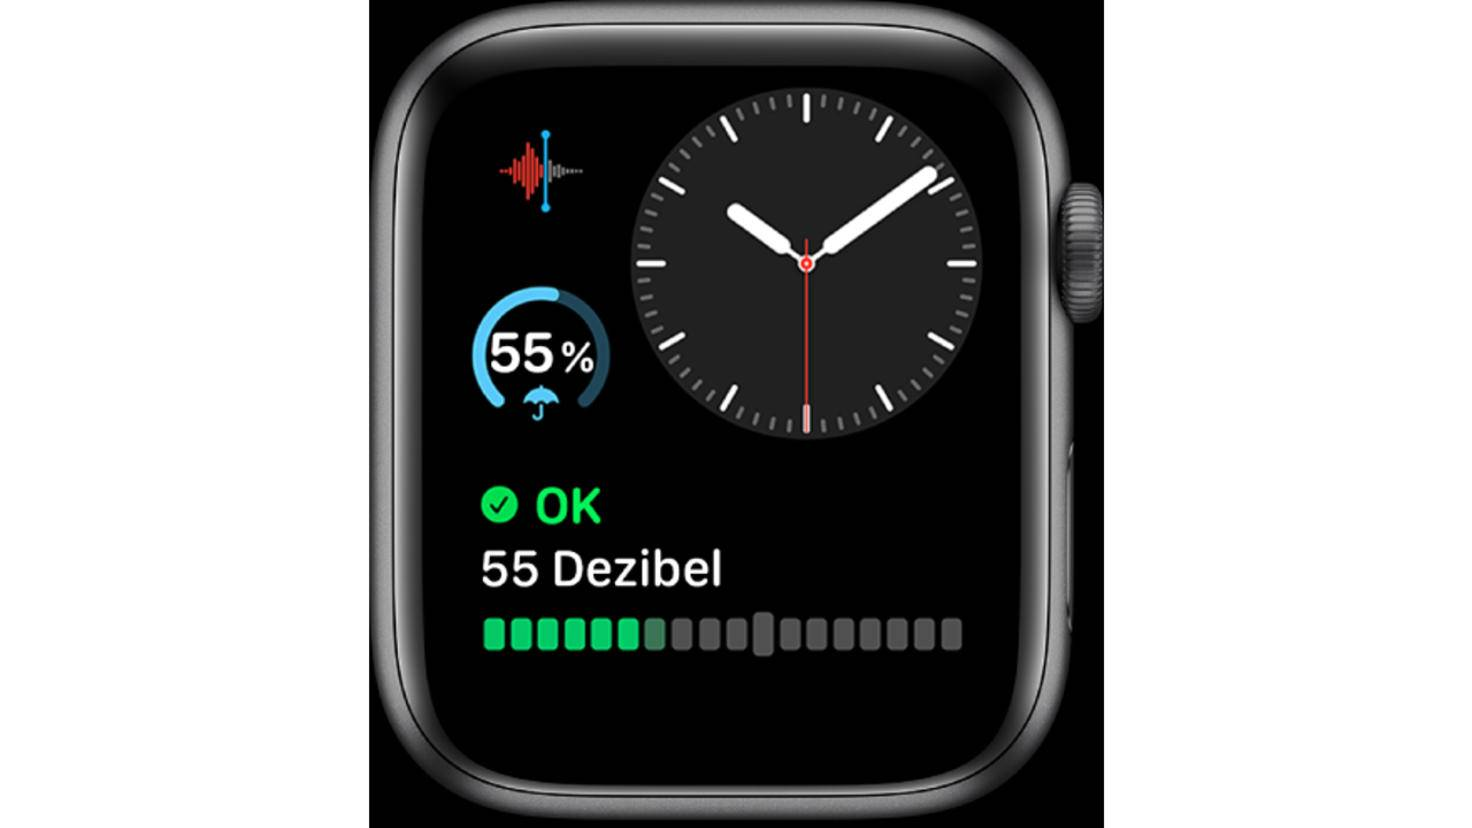 Apple Watch modulaire compacte